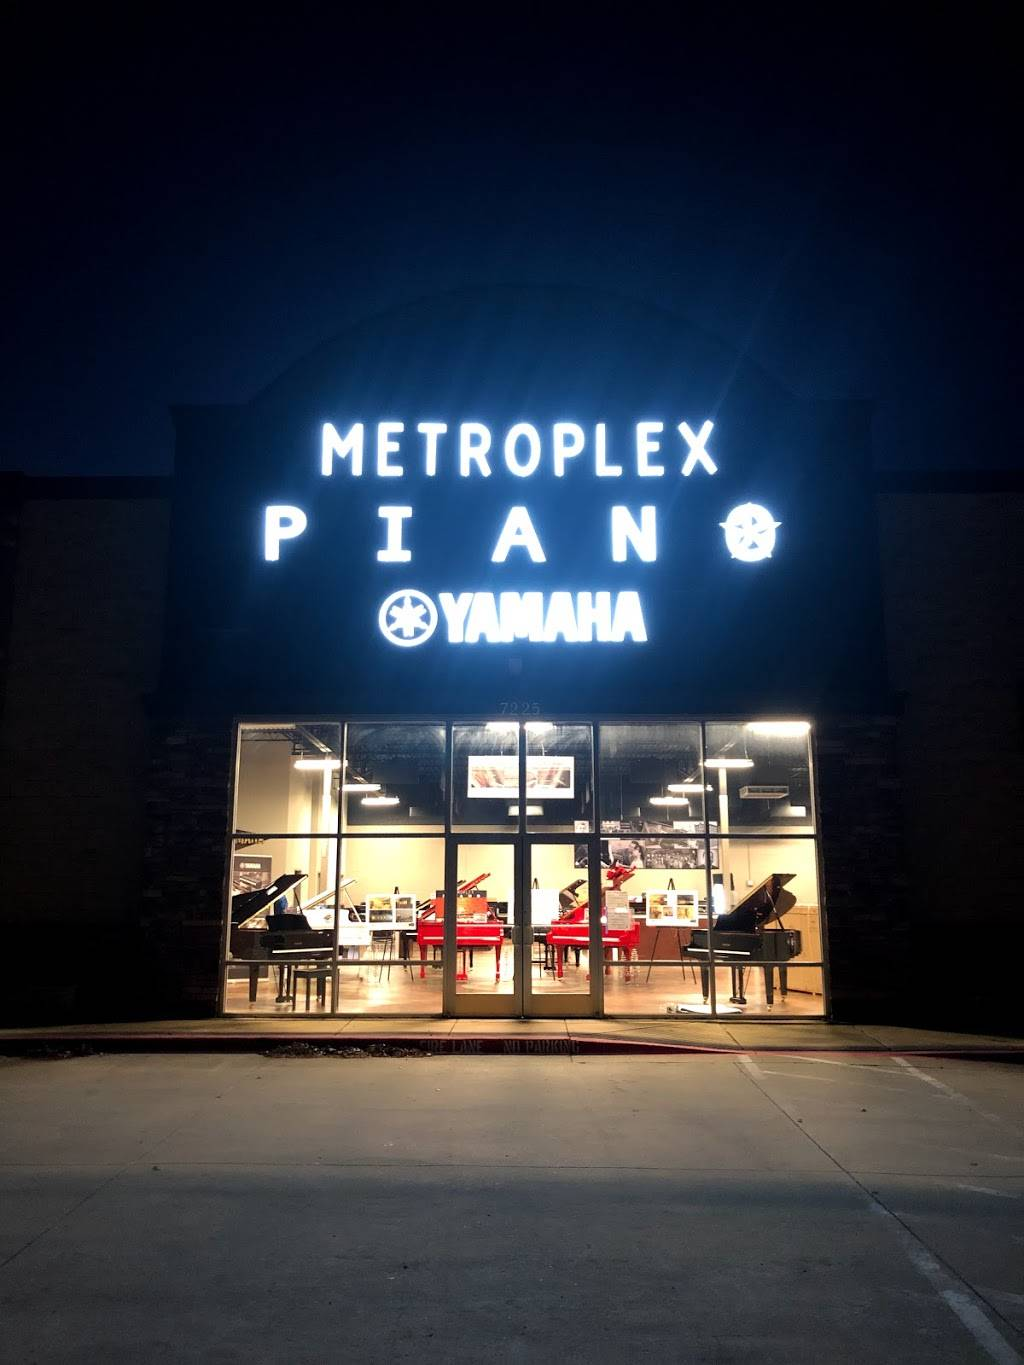 Metroplex Piano - moving company  | Photo 1 of 9 | Address: 7225 Central Expy, Plano, TX 75025, USA | Phone: (972) 388-1130